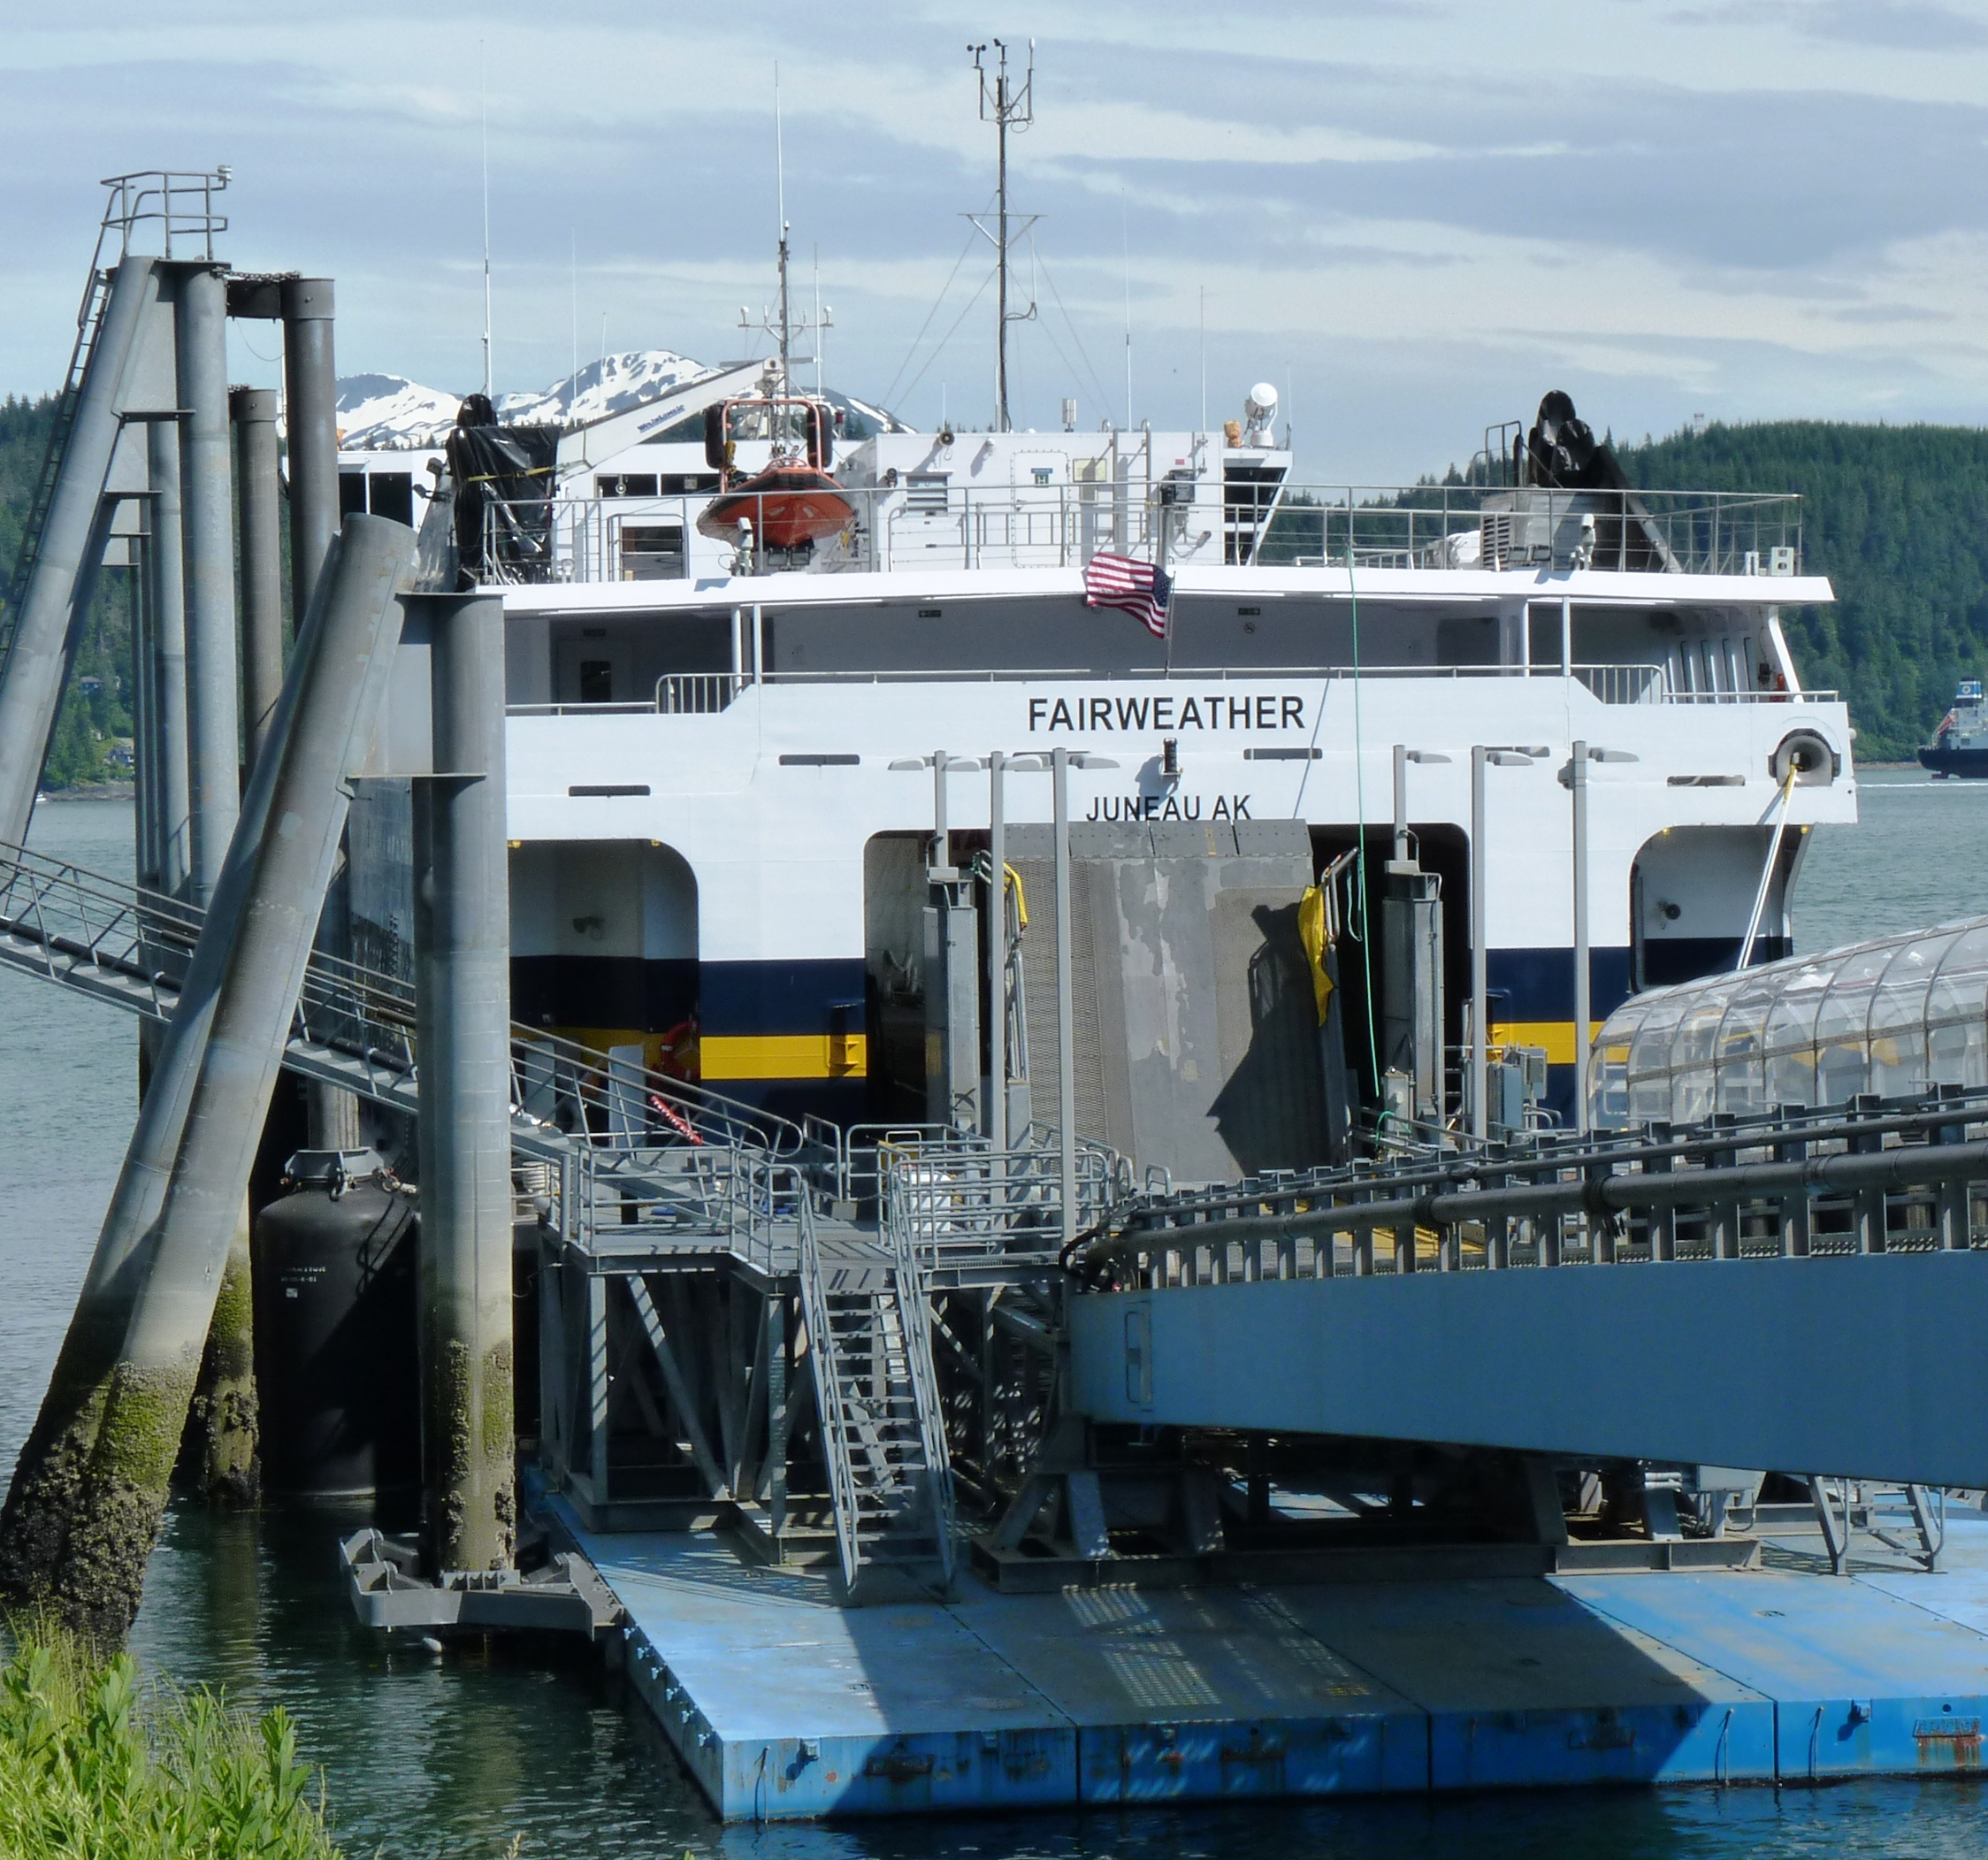 Fast ferry Fairweather docked in Auke Bay (Photo by Ed Schoenfeld/CoastAlaska News)